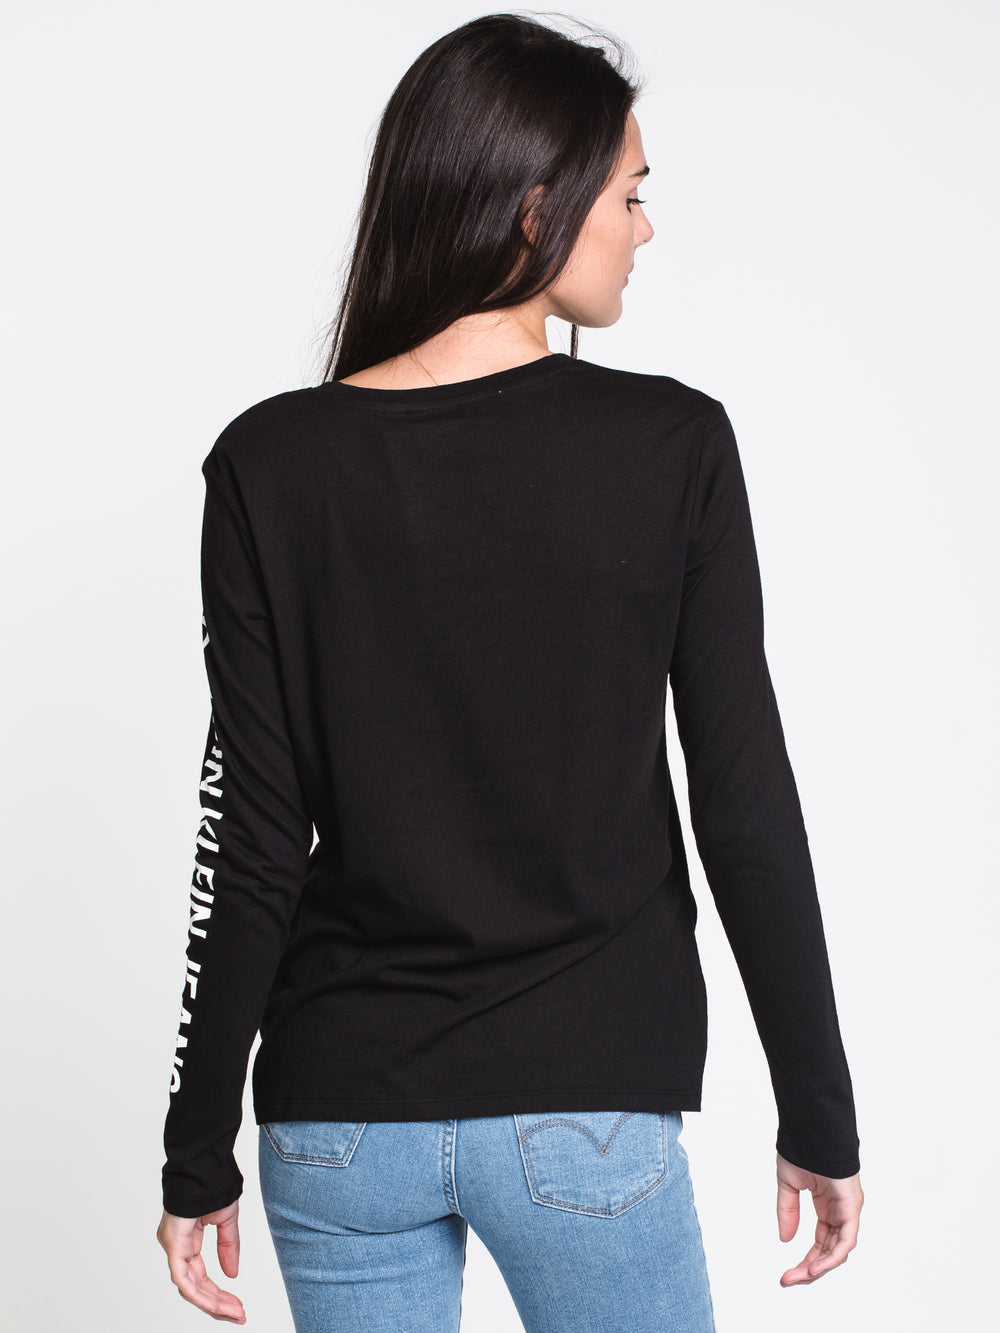 WOMENS VARSITY HER LONG SLEEVE TEE - BLACK